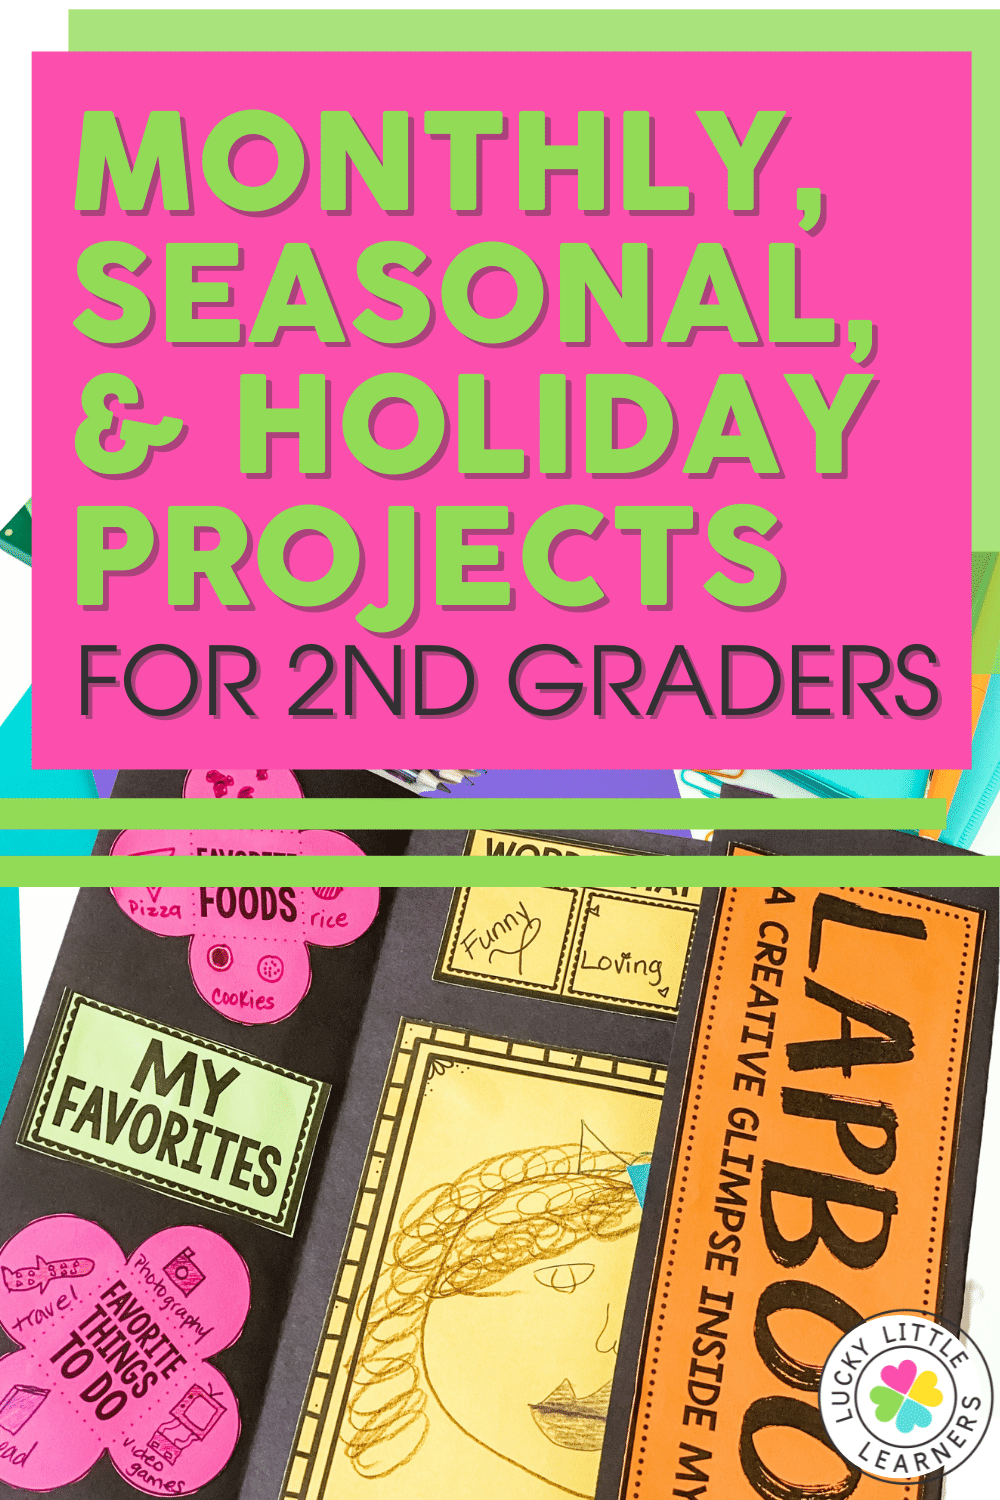 These seasonal and holiday projects for 2nd graders are a fun and unique way to dive deep into a variety of topics, while showing evidence of learning through creative writing.